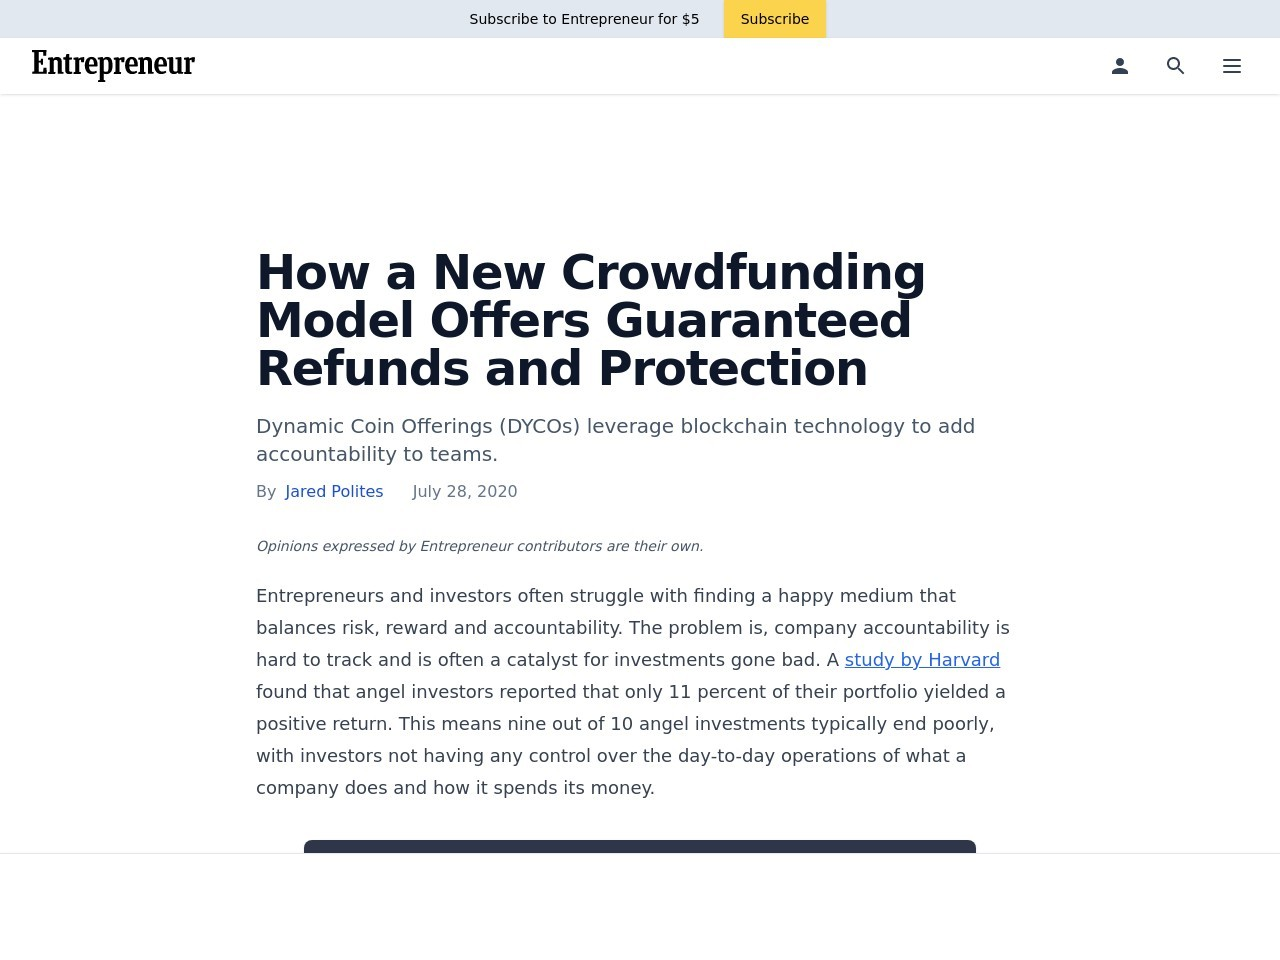 How a New Crowdfunding Model Offers Guaranteed Refunds and Protection